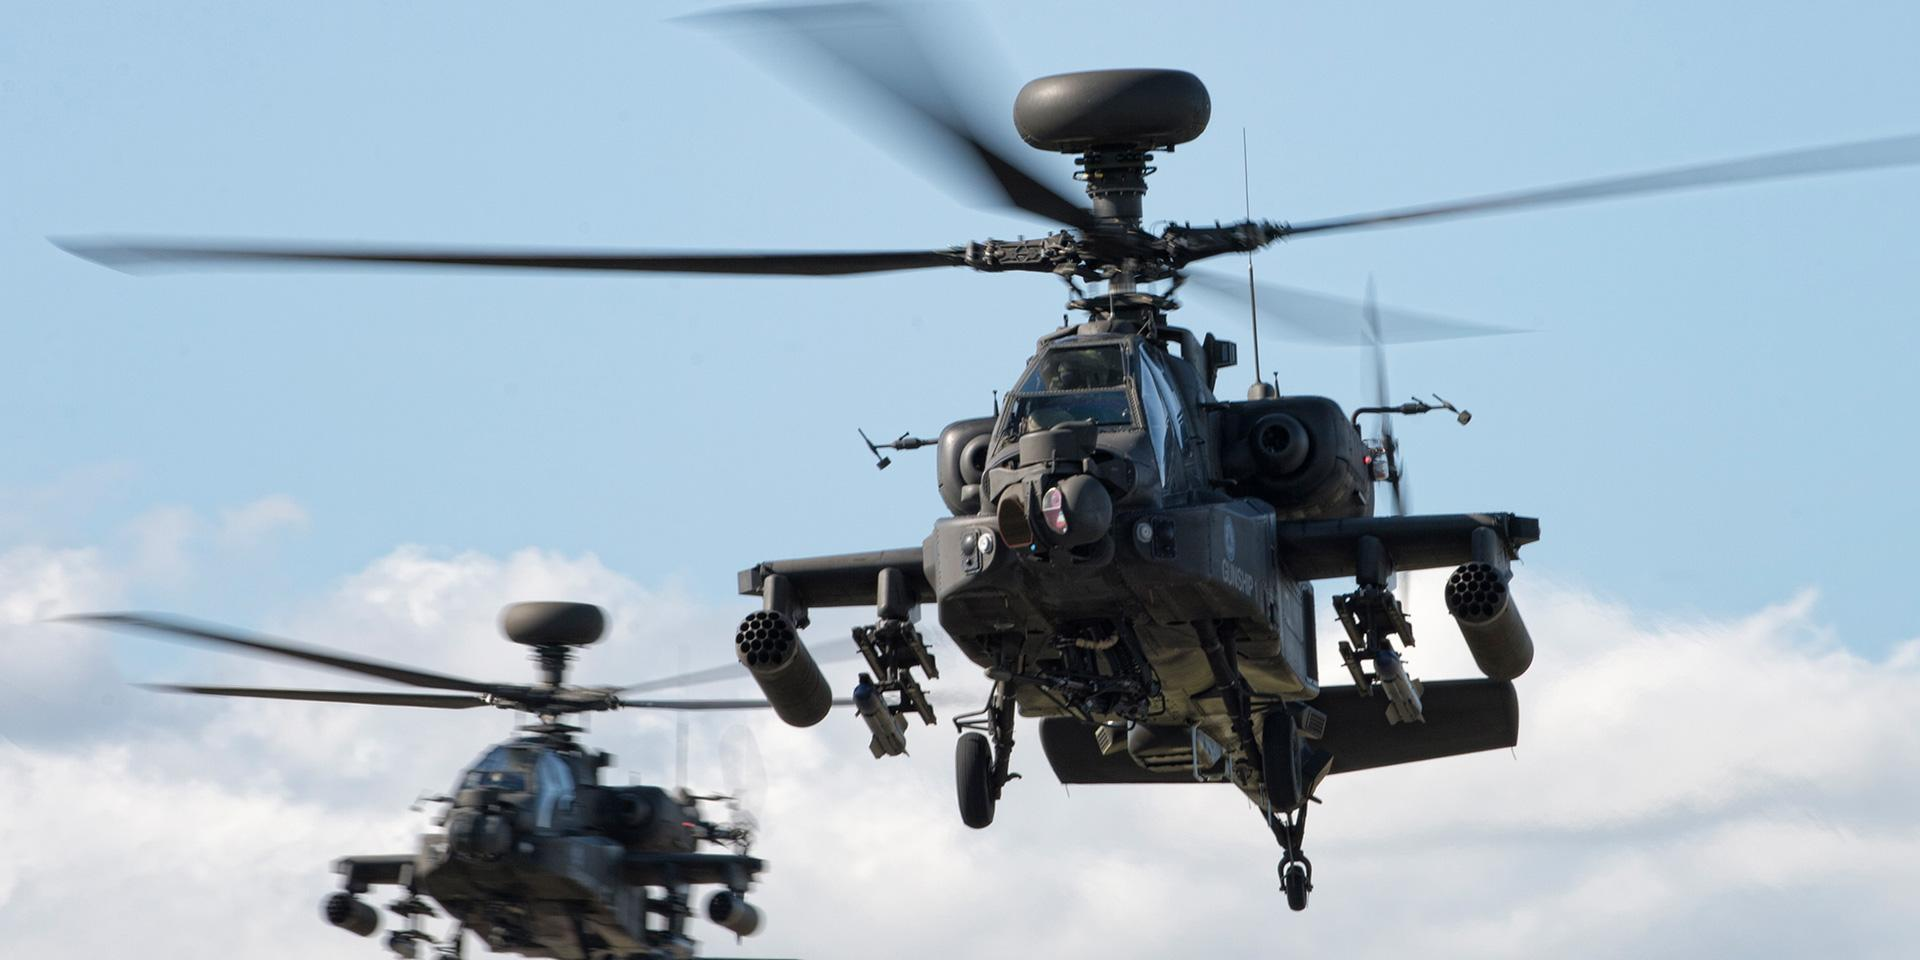 AH64 attack helicopters from the Army Air Corps' Apache Display Team, 2015